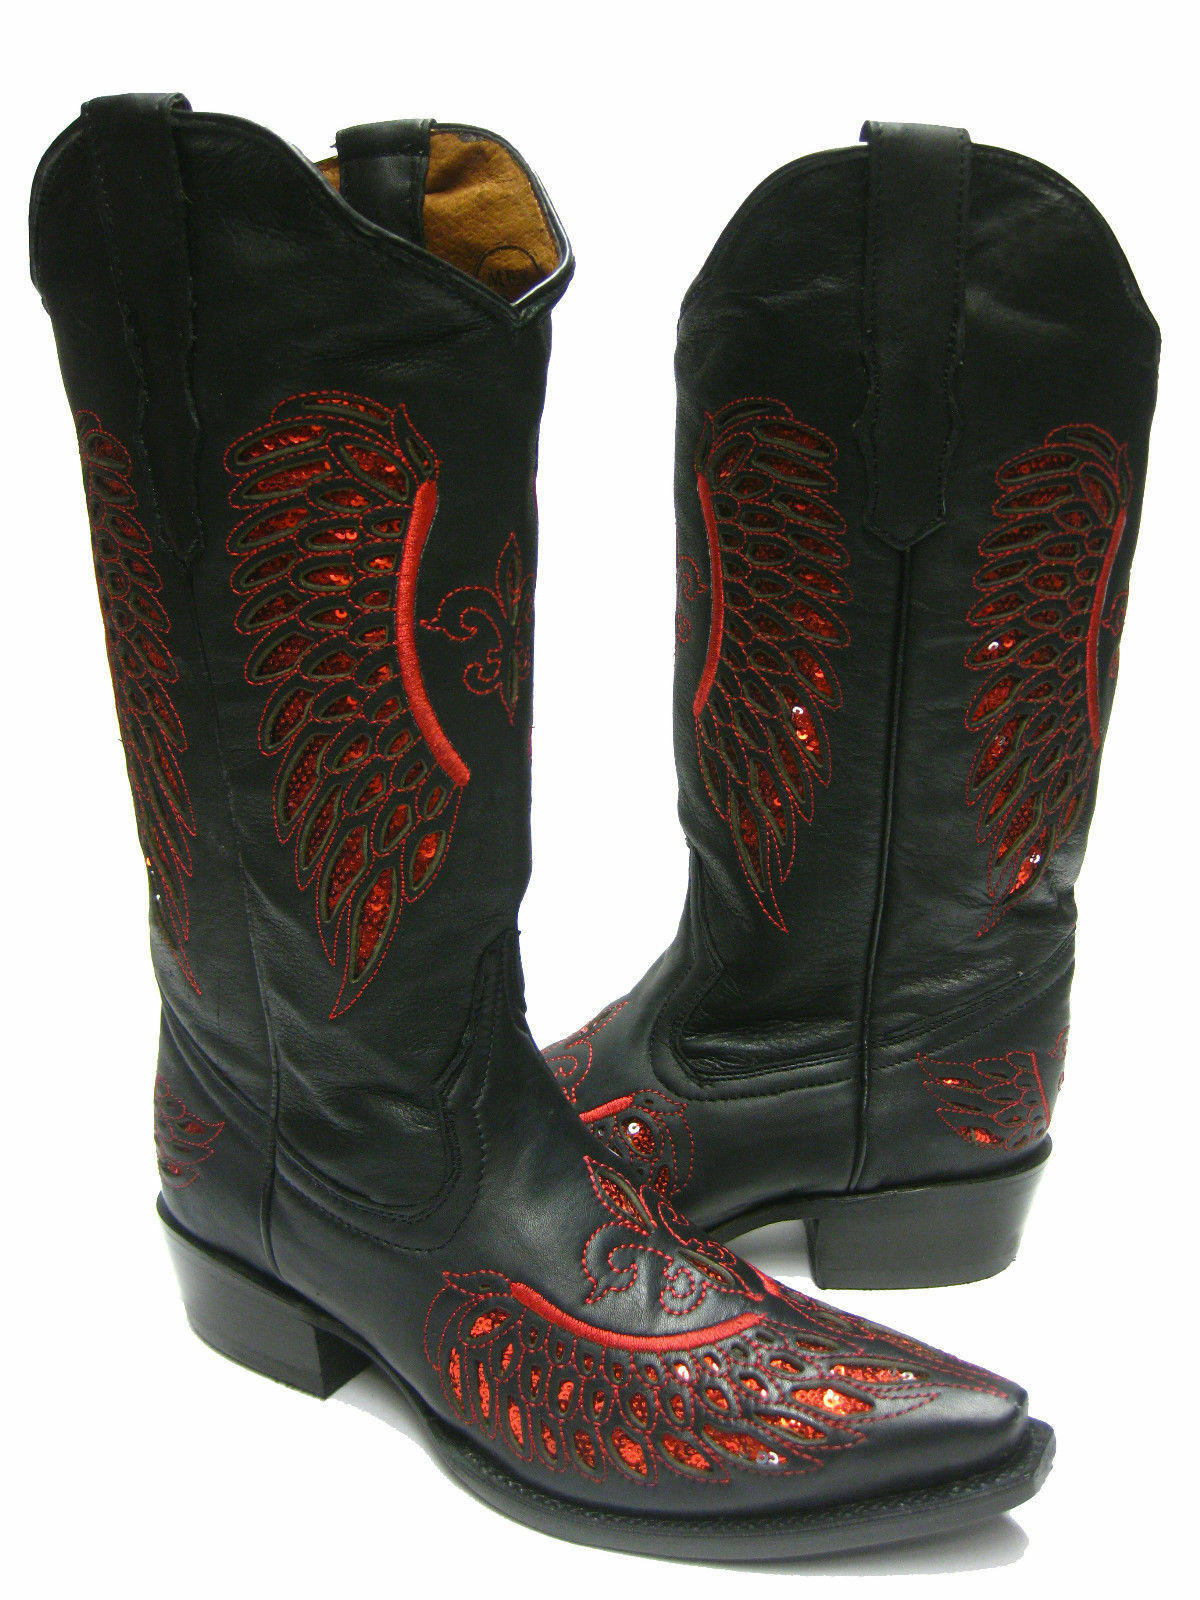 Women's Black Flower Inlay Wings Red Sequins Leather Cowboy Boots Snip Toe